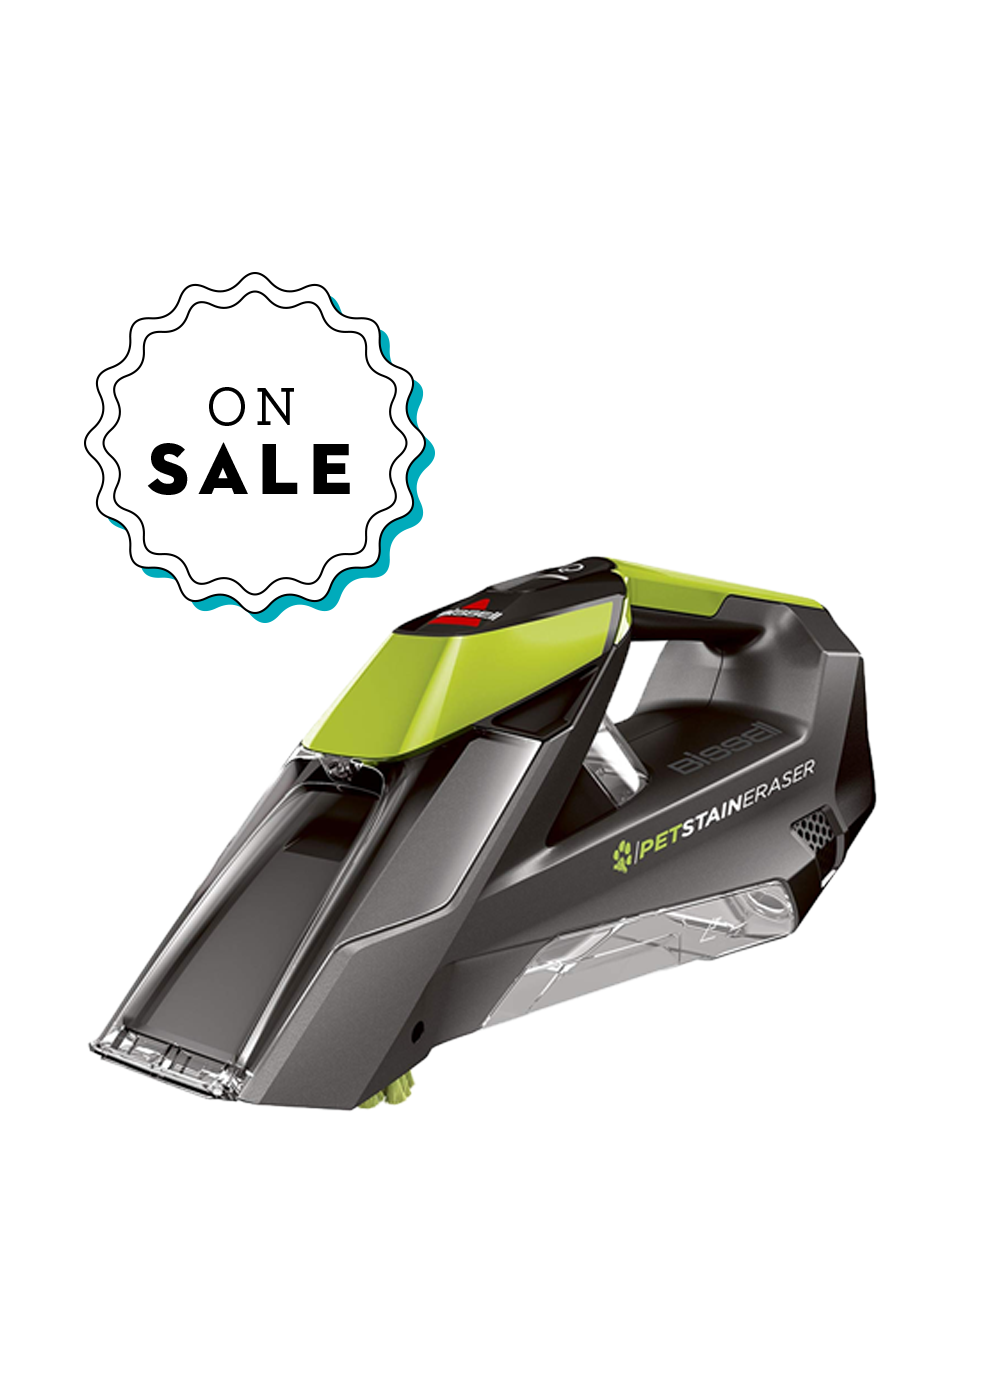 5 Best Carpet Cleaners to Buy 2019 - Top Carpet Cleaning Machine Reviews